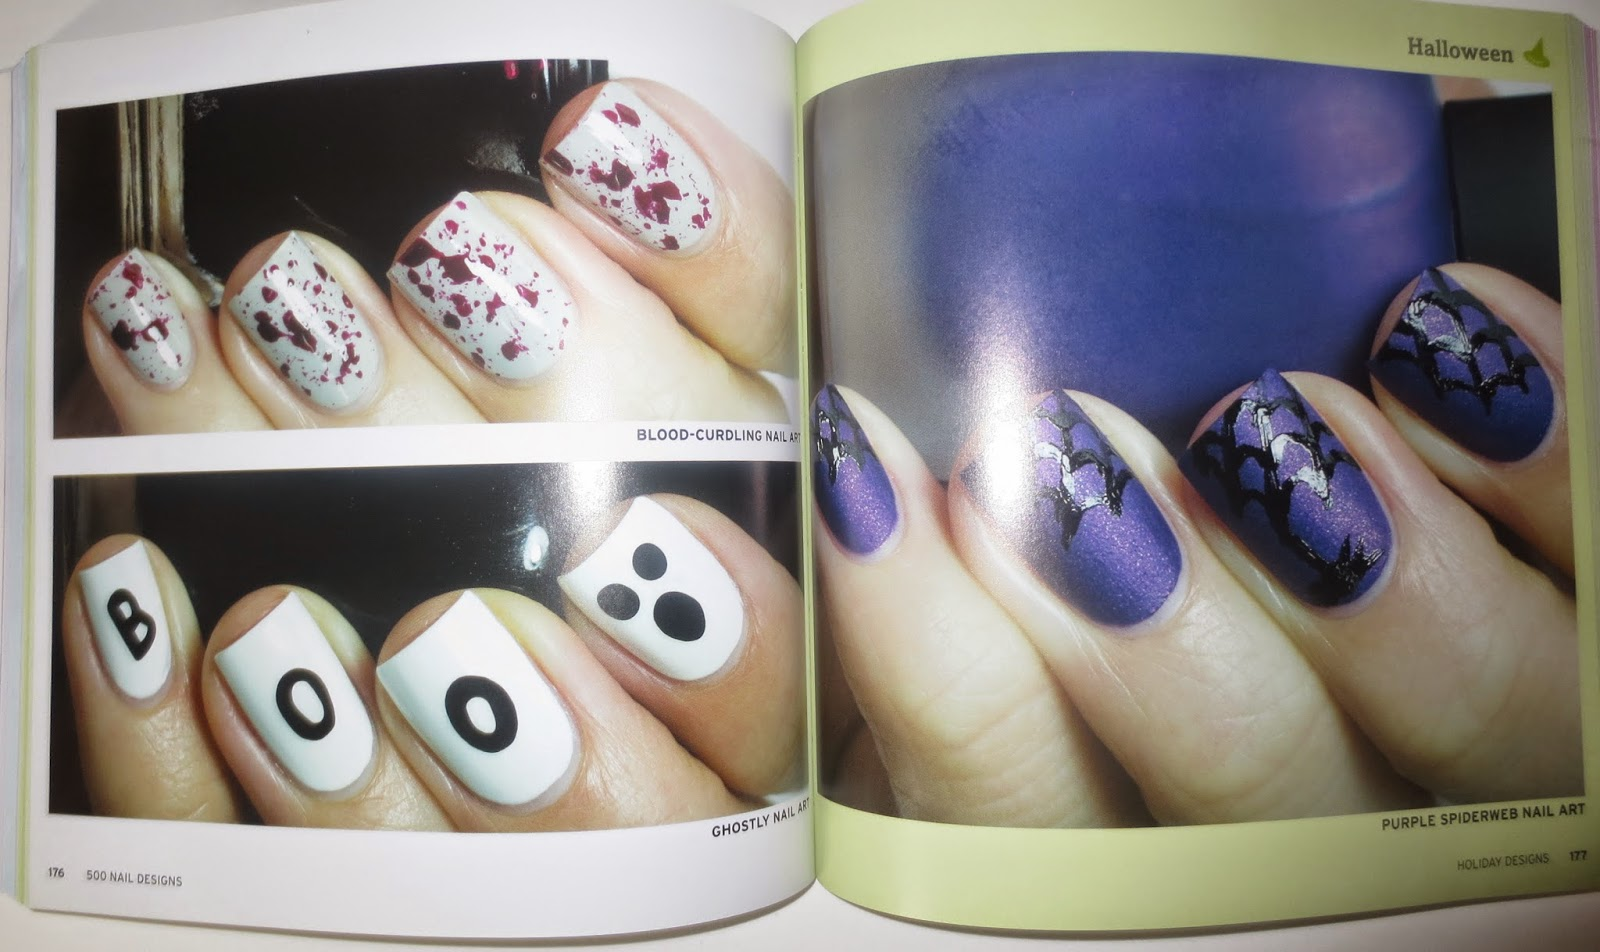 500 Nail Designs by Chelsea Franklin